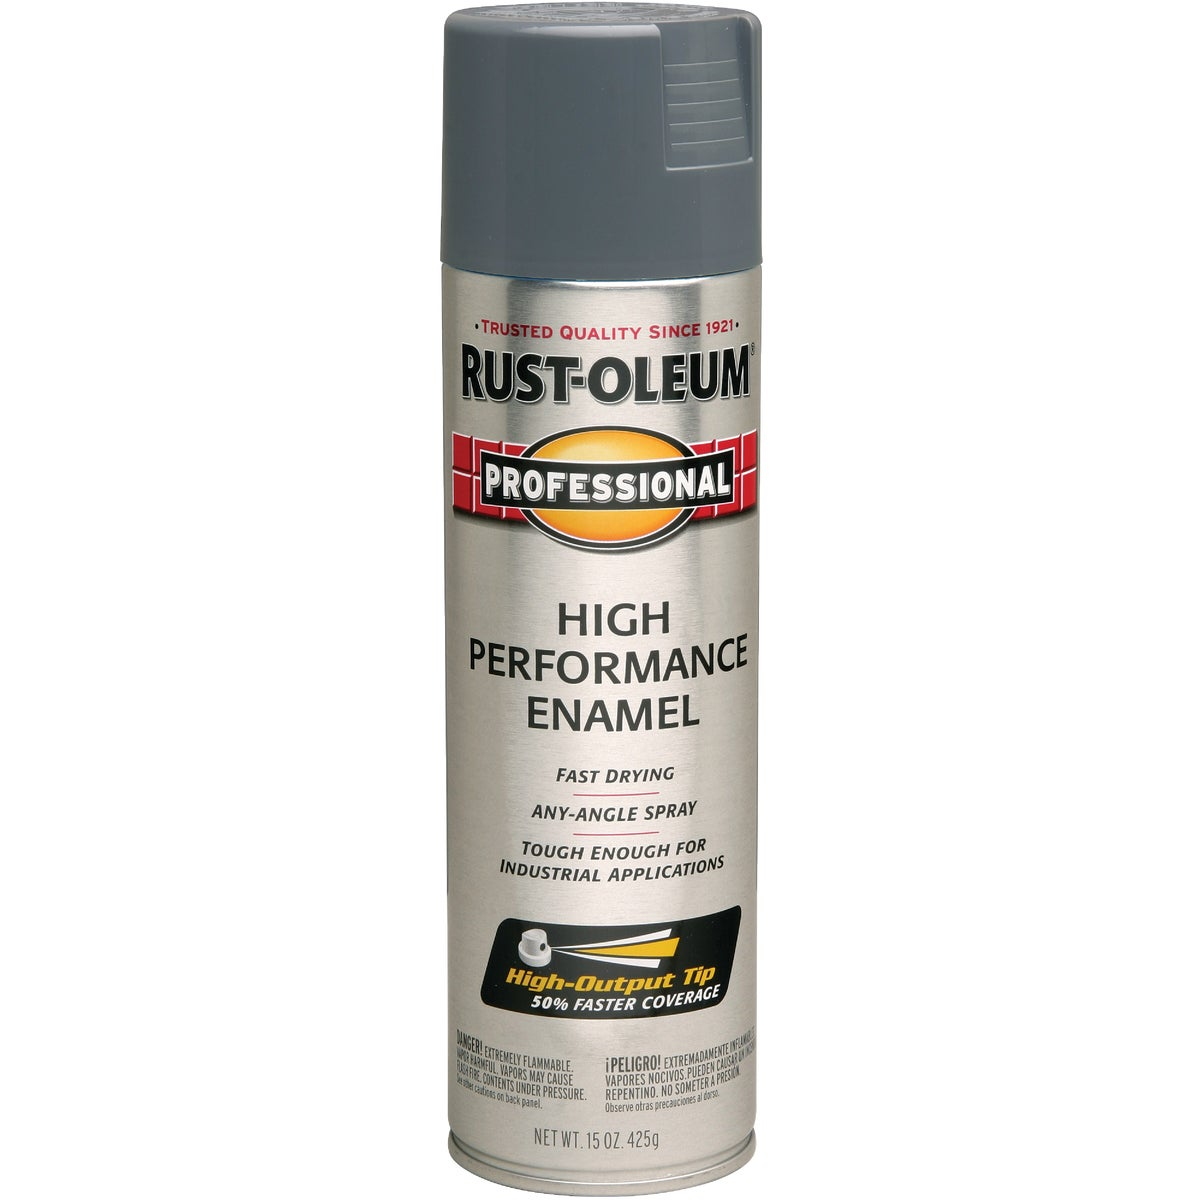 DRK GRAY PRO SPRAY PAINT - 7587-838 by Rustoleum